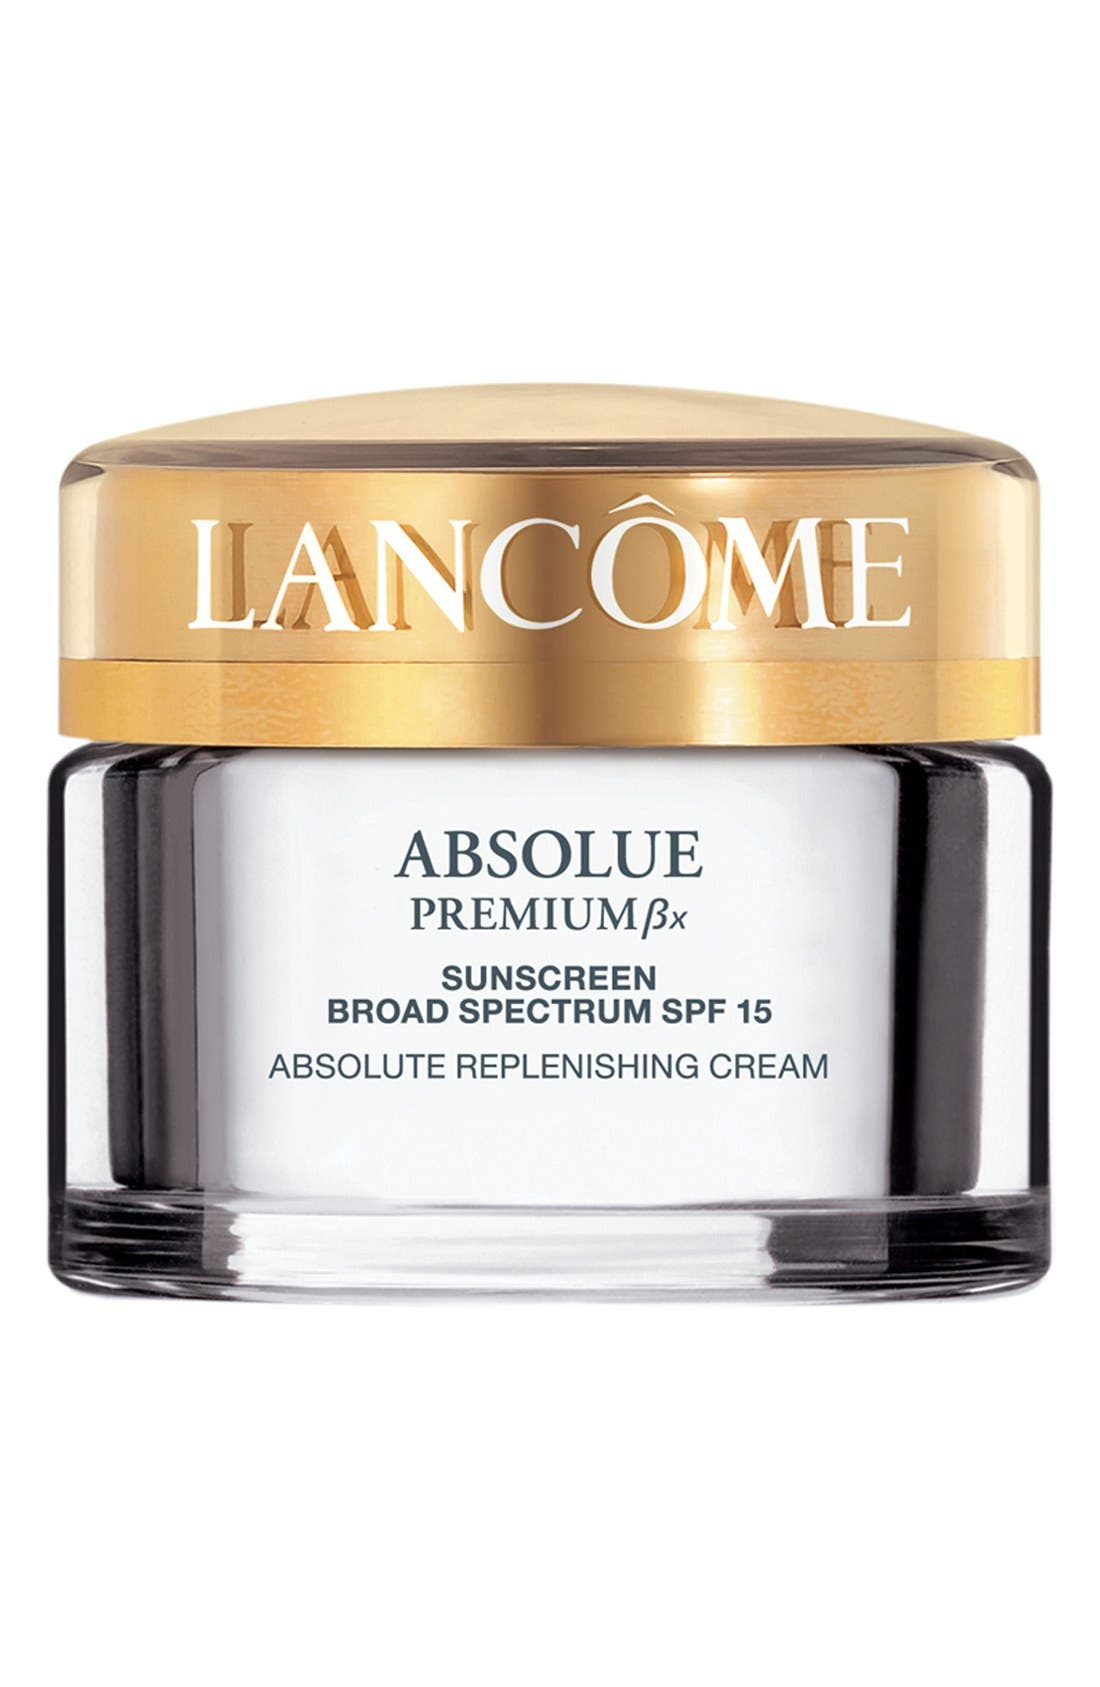 Absolue Premium ßx Absolute Replenishing Cream SPF 15,                         Main,                         color, 000